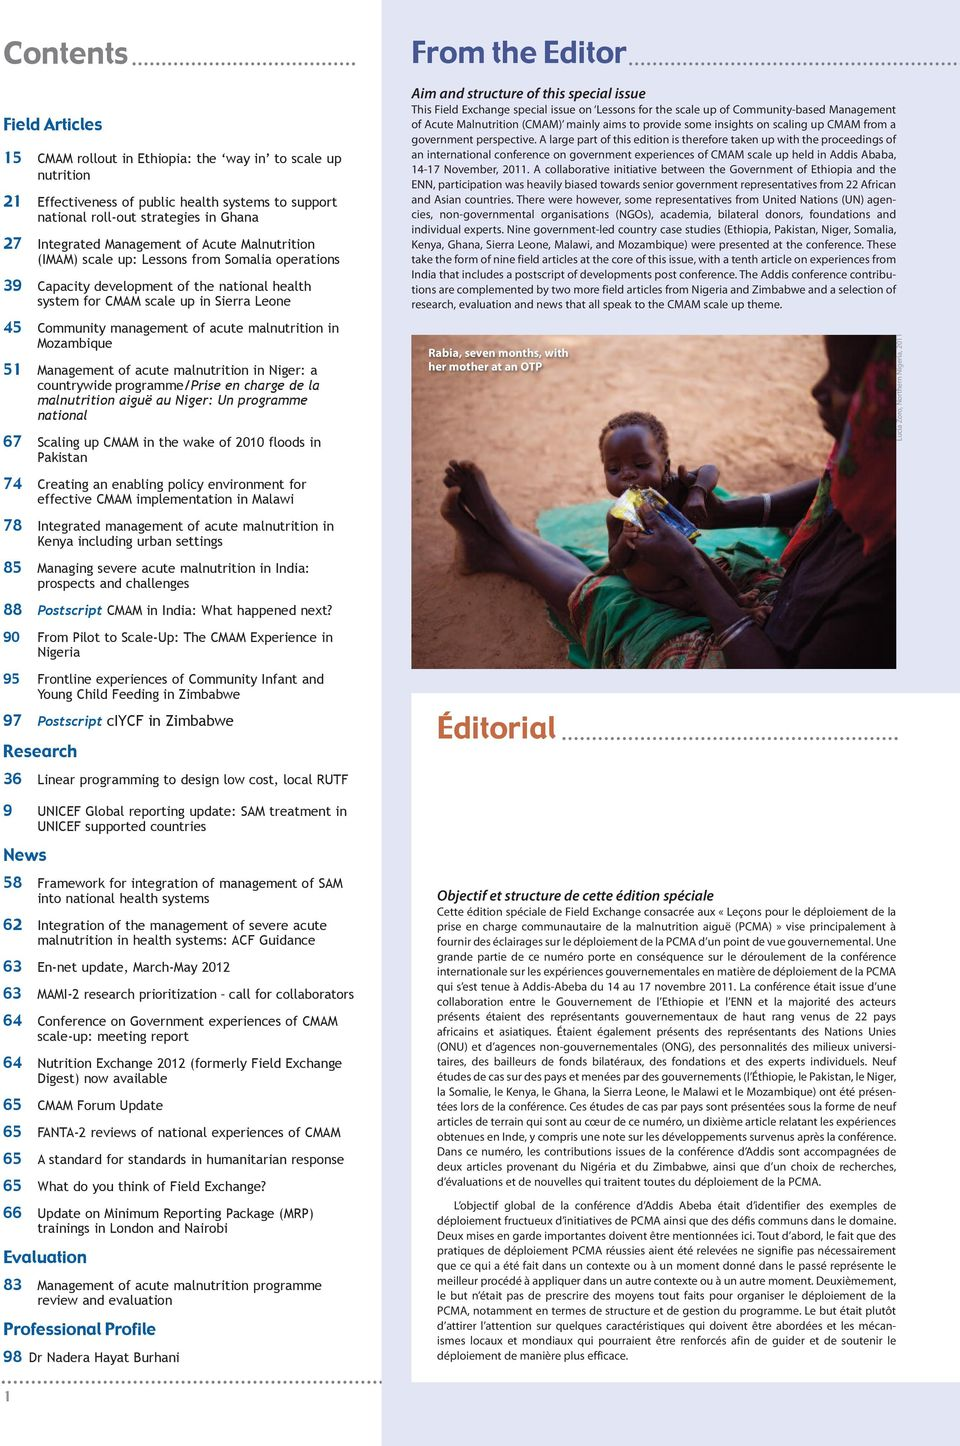 acute malnutrition in Mozambique 51 Management of acute malnutrition in Niger: a countrywide programme/prise en charge de la malnutrition aiguë au Niger: Un programme national 67 Scaling up CMAM in